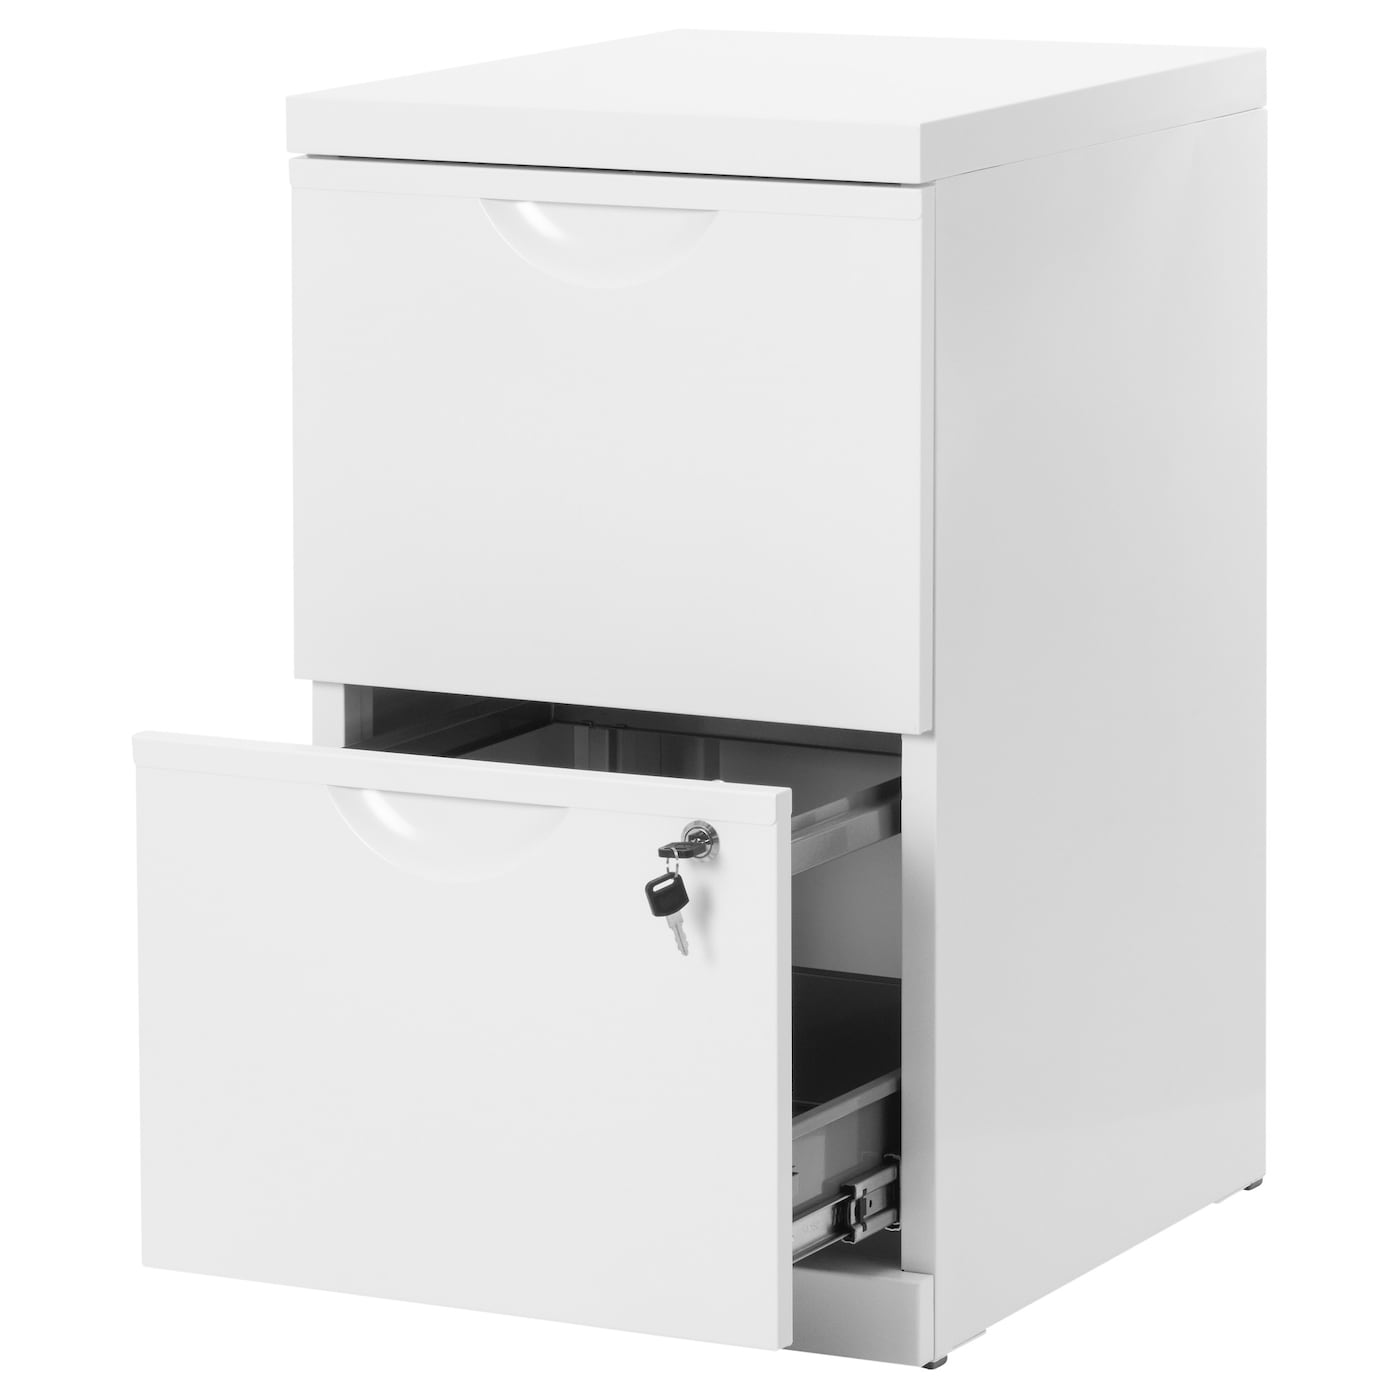 erik furniture store it files cabinet for art cm easy products en drop filing your drawers sort make units gb ikea white and to drawer cabinets storage file